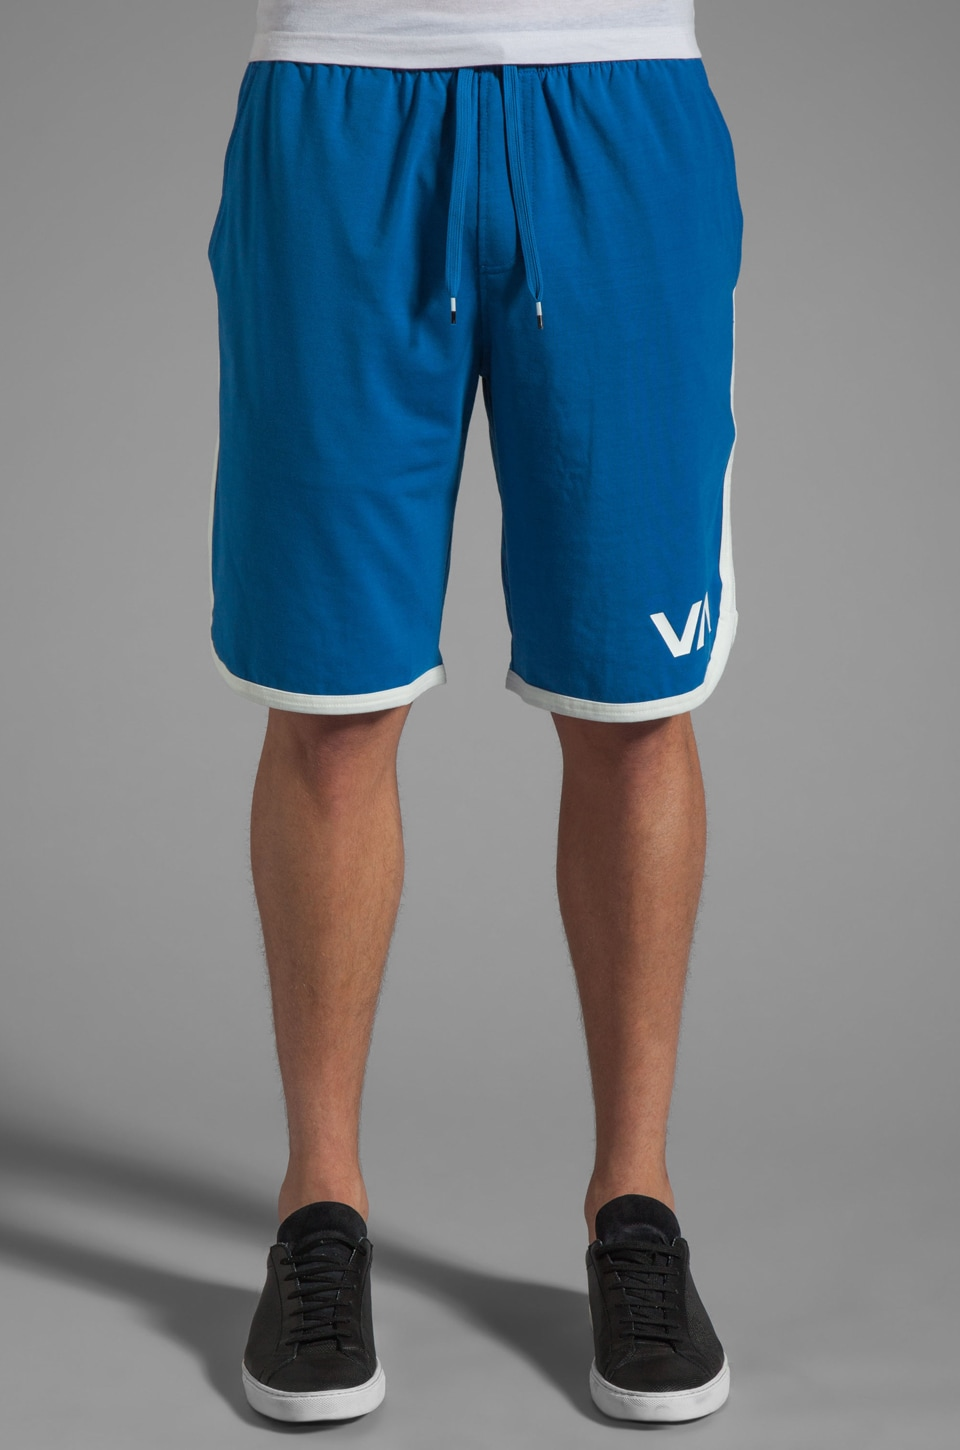 RVCA VA Sport Short in Snorkel Blue/Vintage White